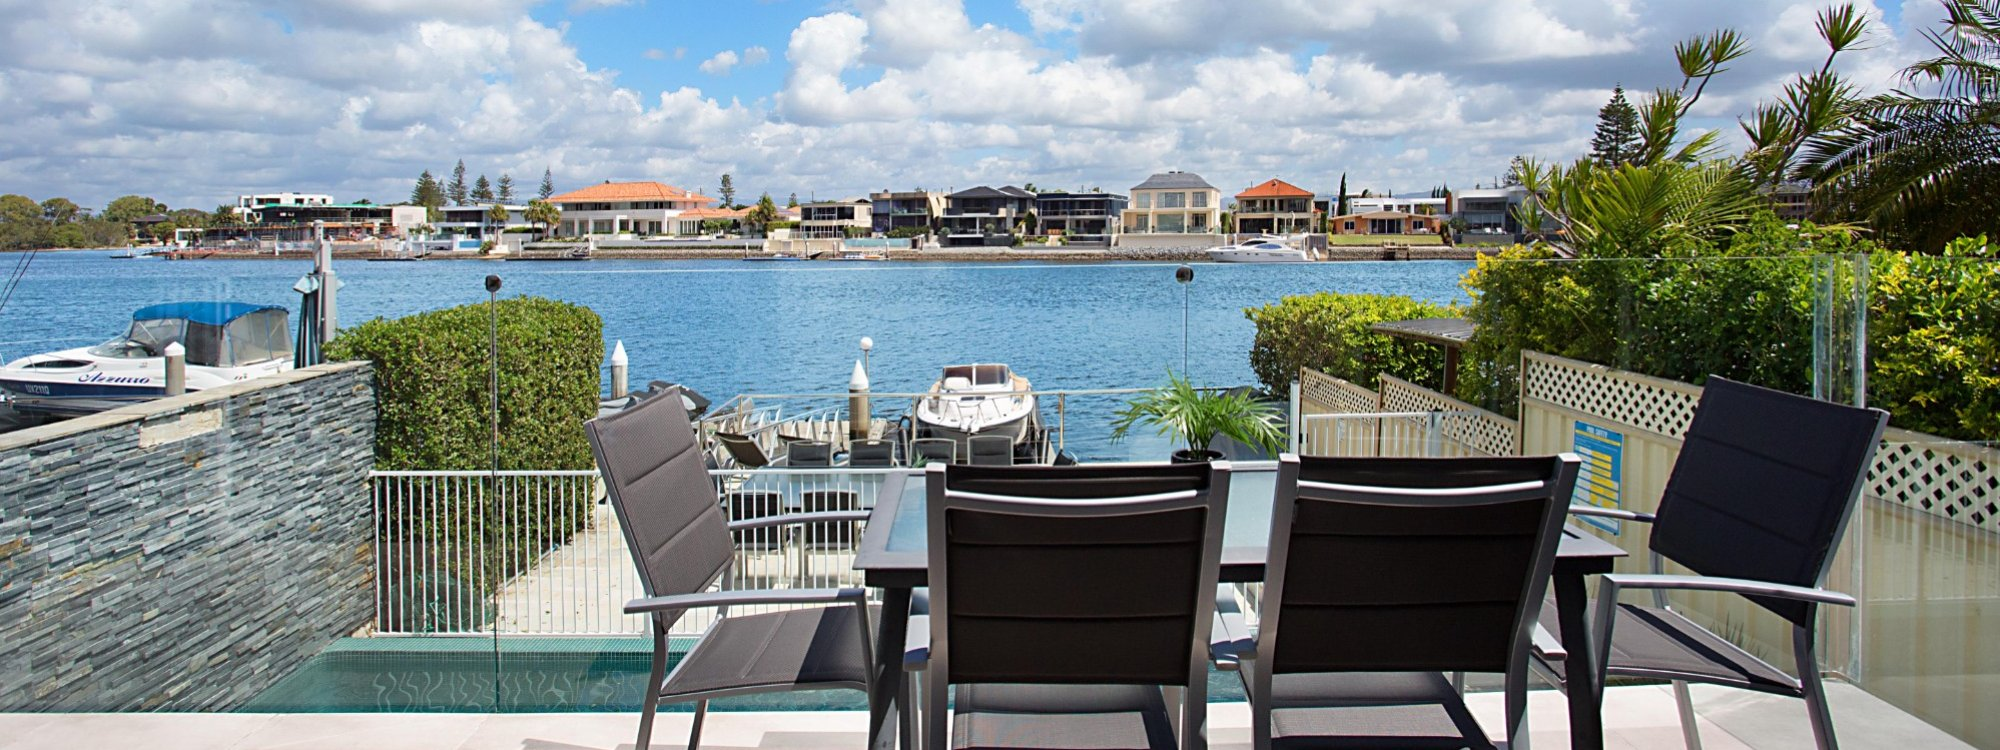 Casa Grande on the Water - Surfers Paradise - Outdoor entertaining area